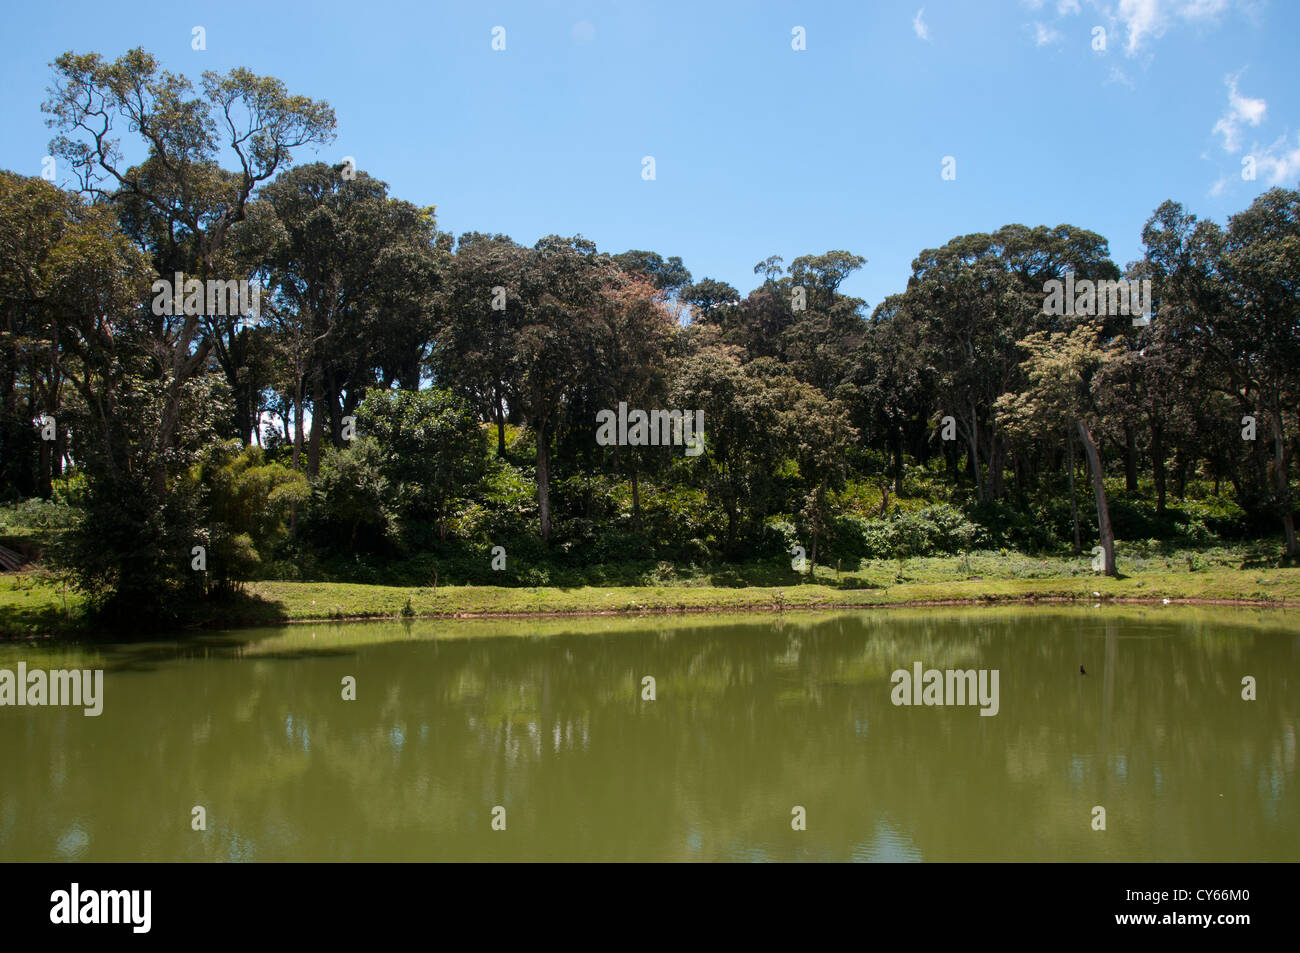 Lake in periyar tiger reserve Kerala - Stock Image